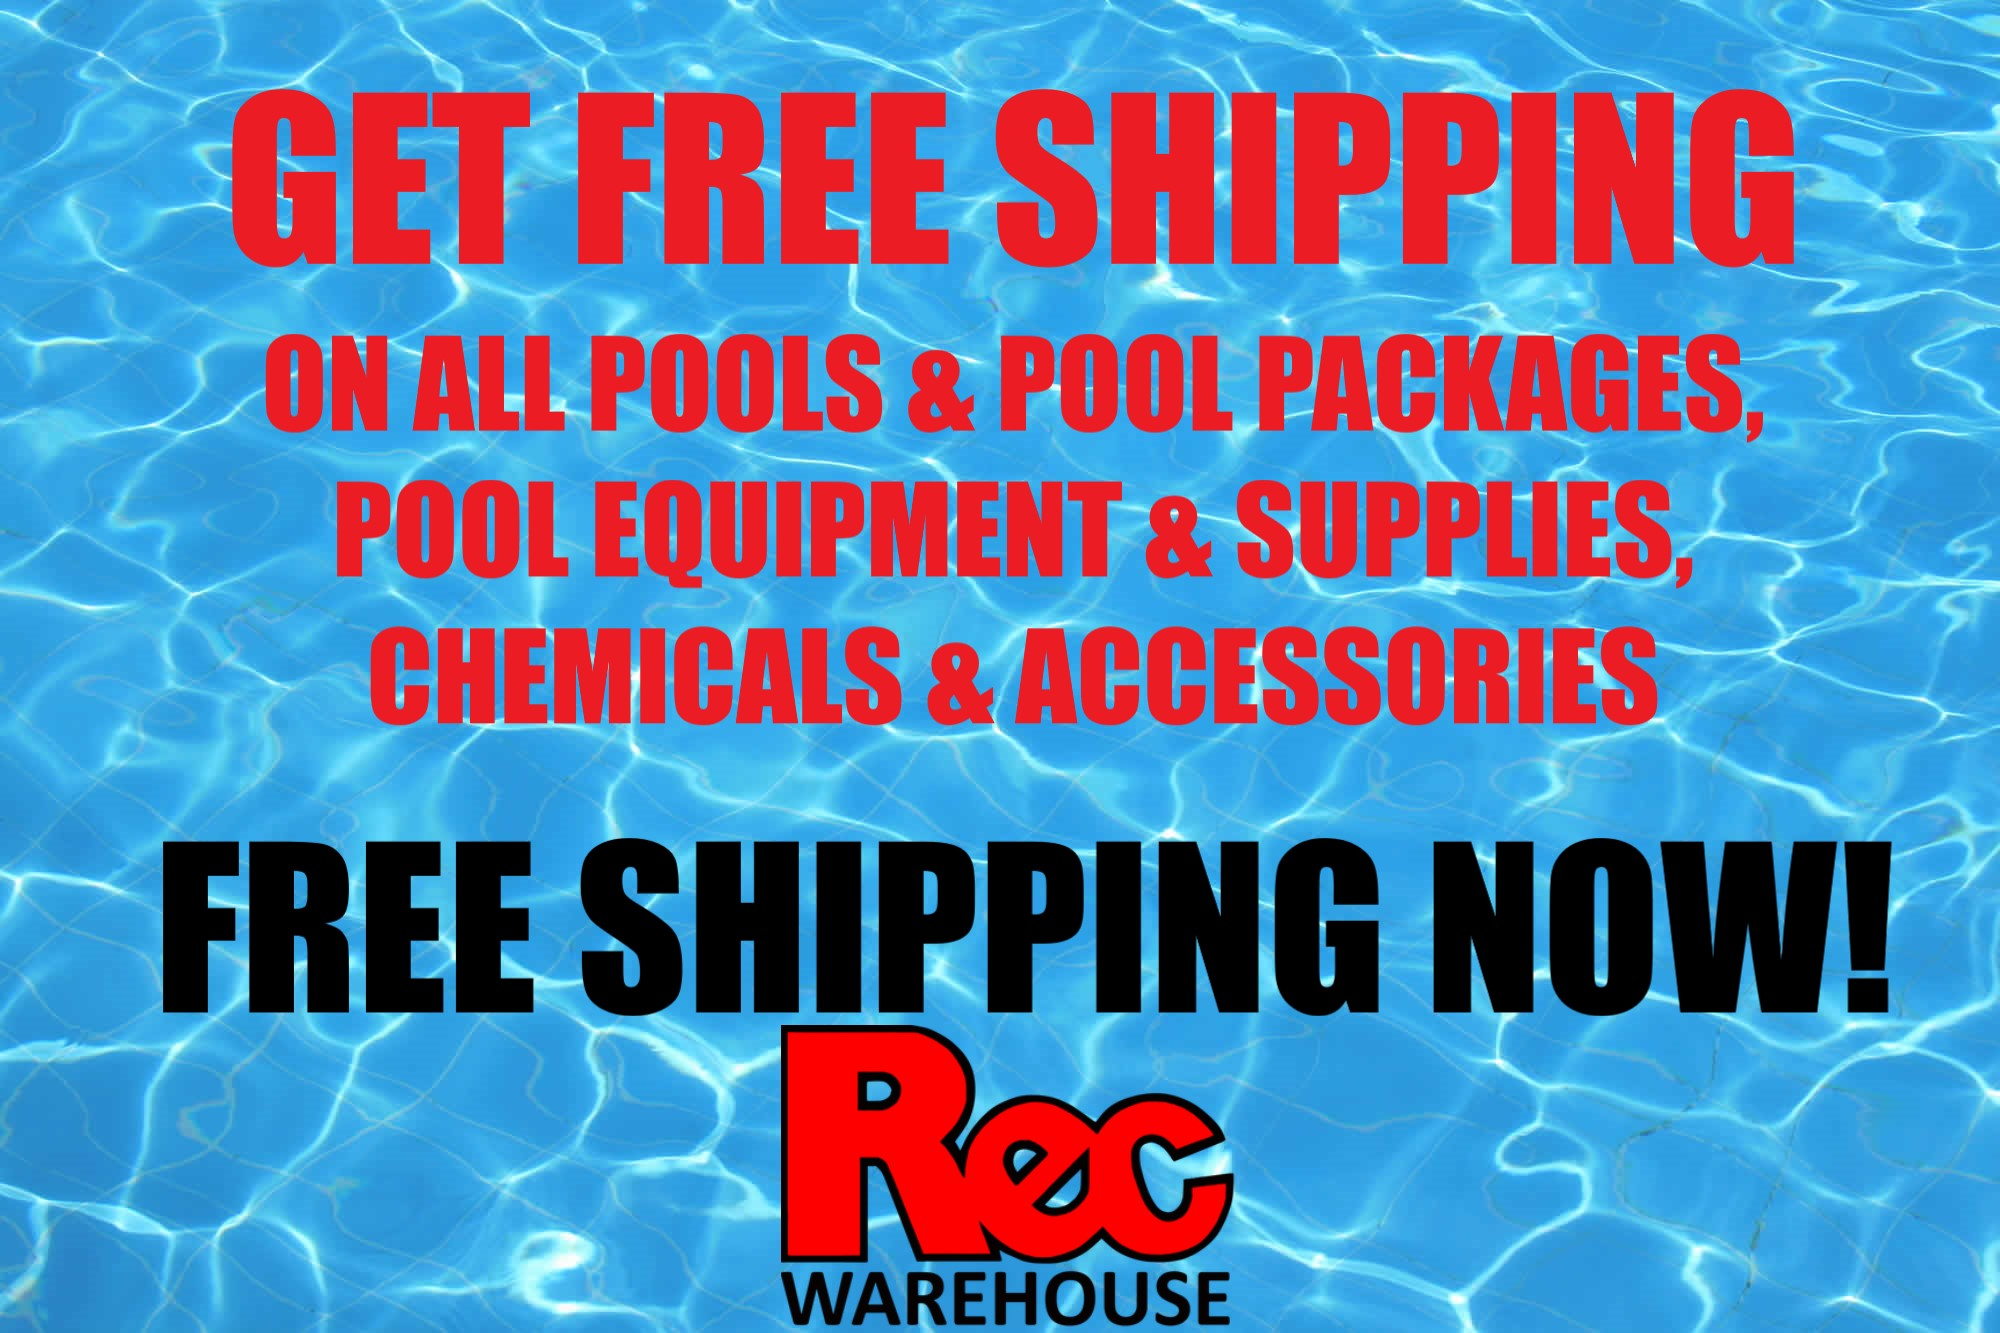 Hot Tubs Billiards Pool Tables Above Grounds Pools Rec Warehouse